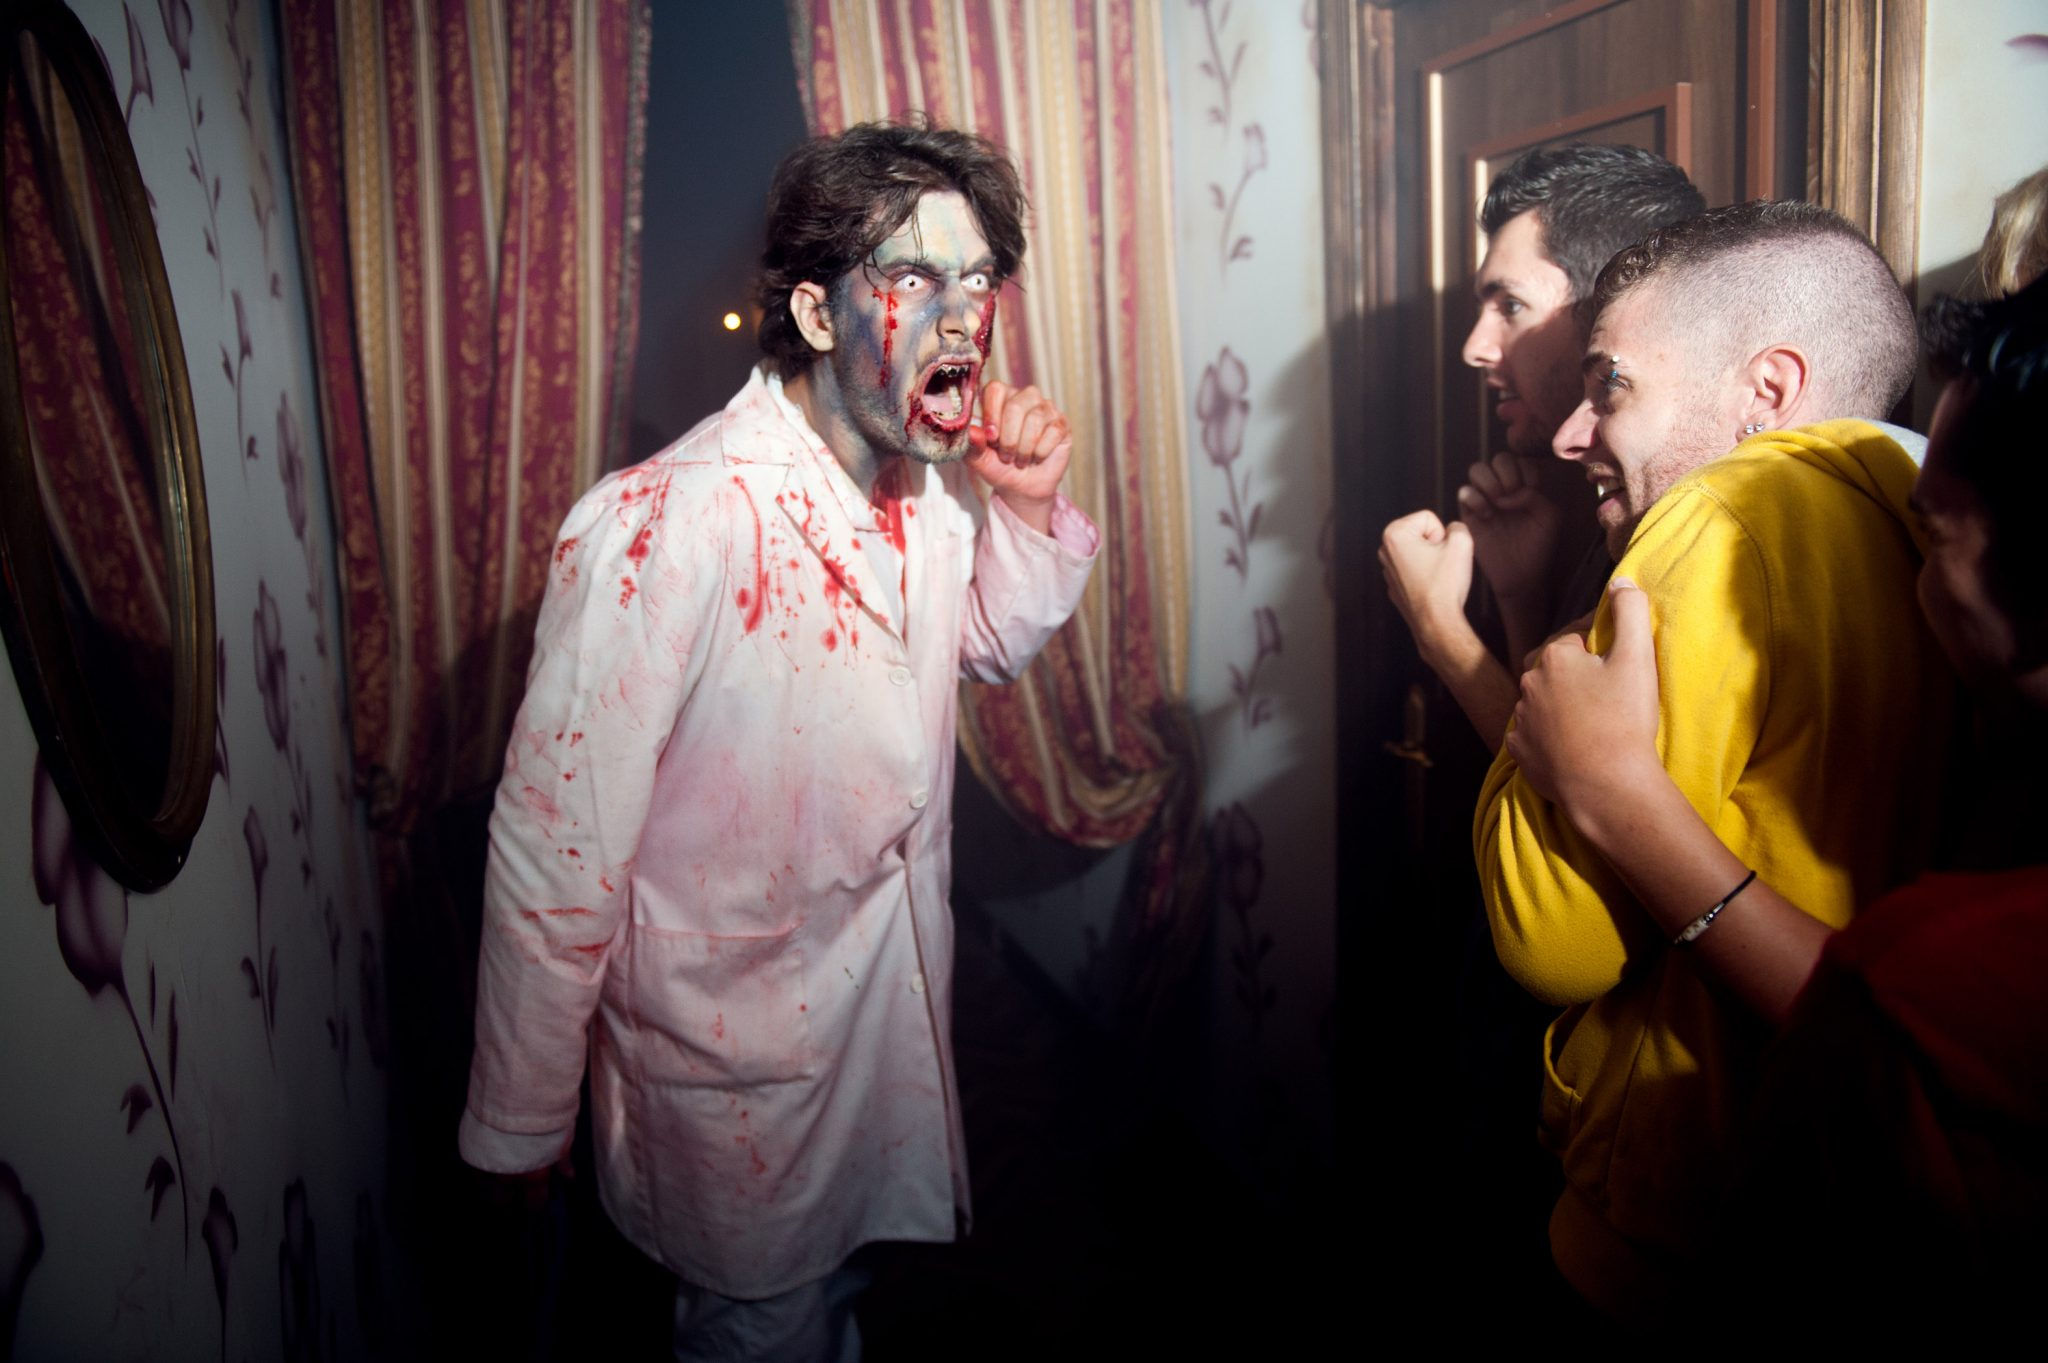 PortAventura World prepares to kick off its 21st Halloween with the first passage in Europe themed on the Mexican horror universe.